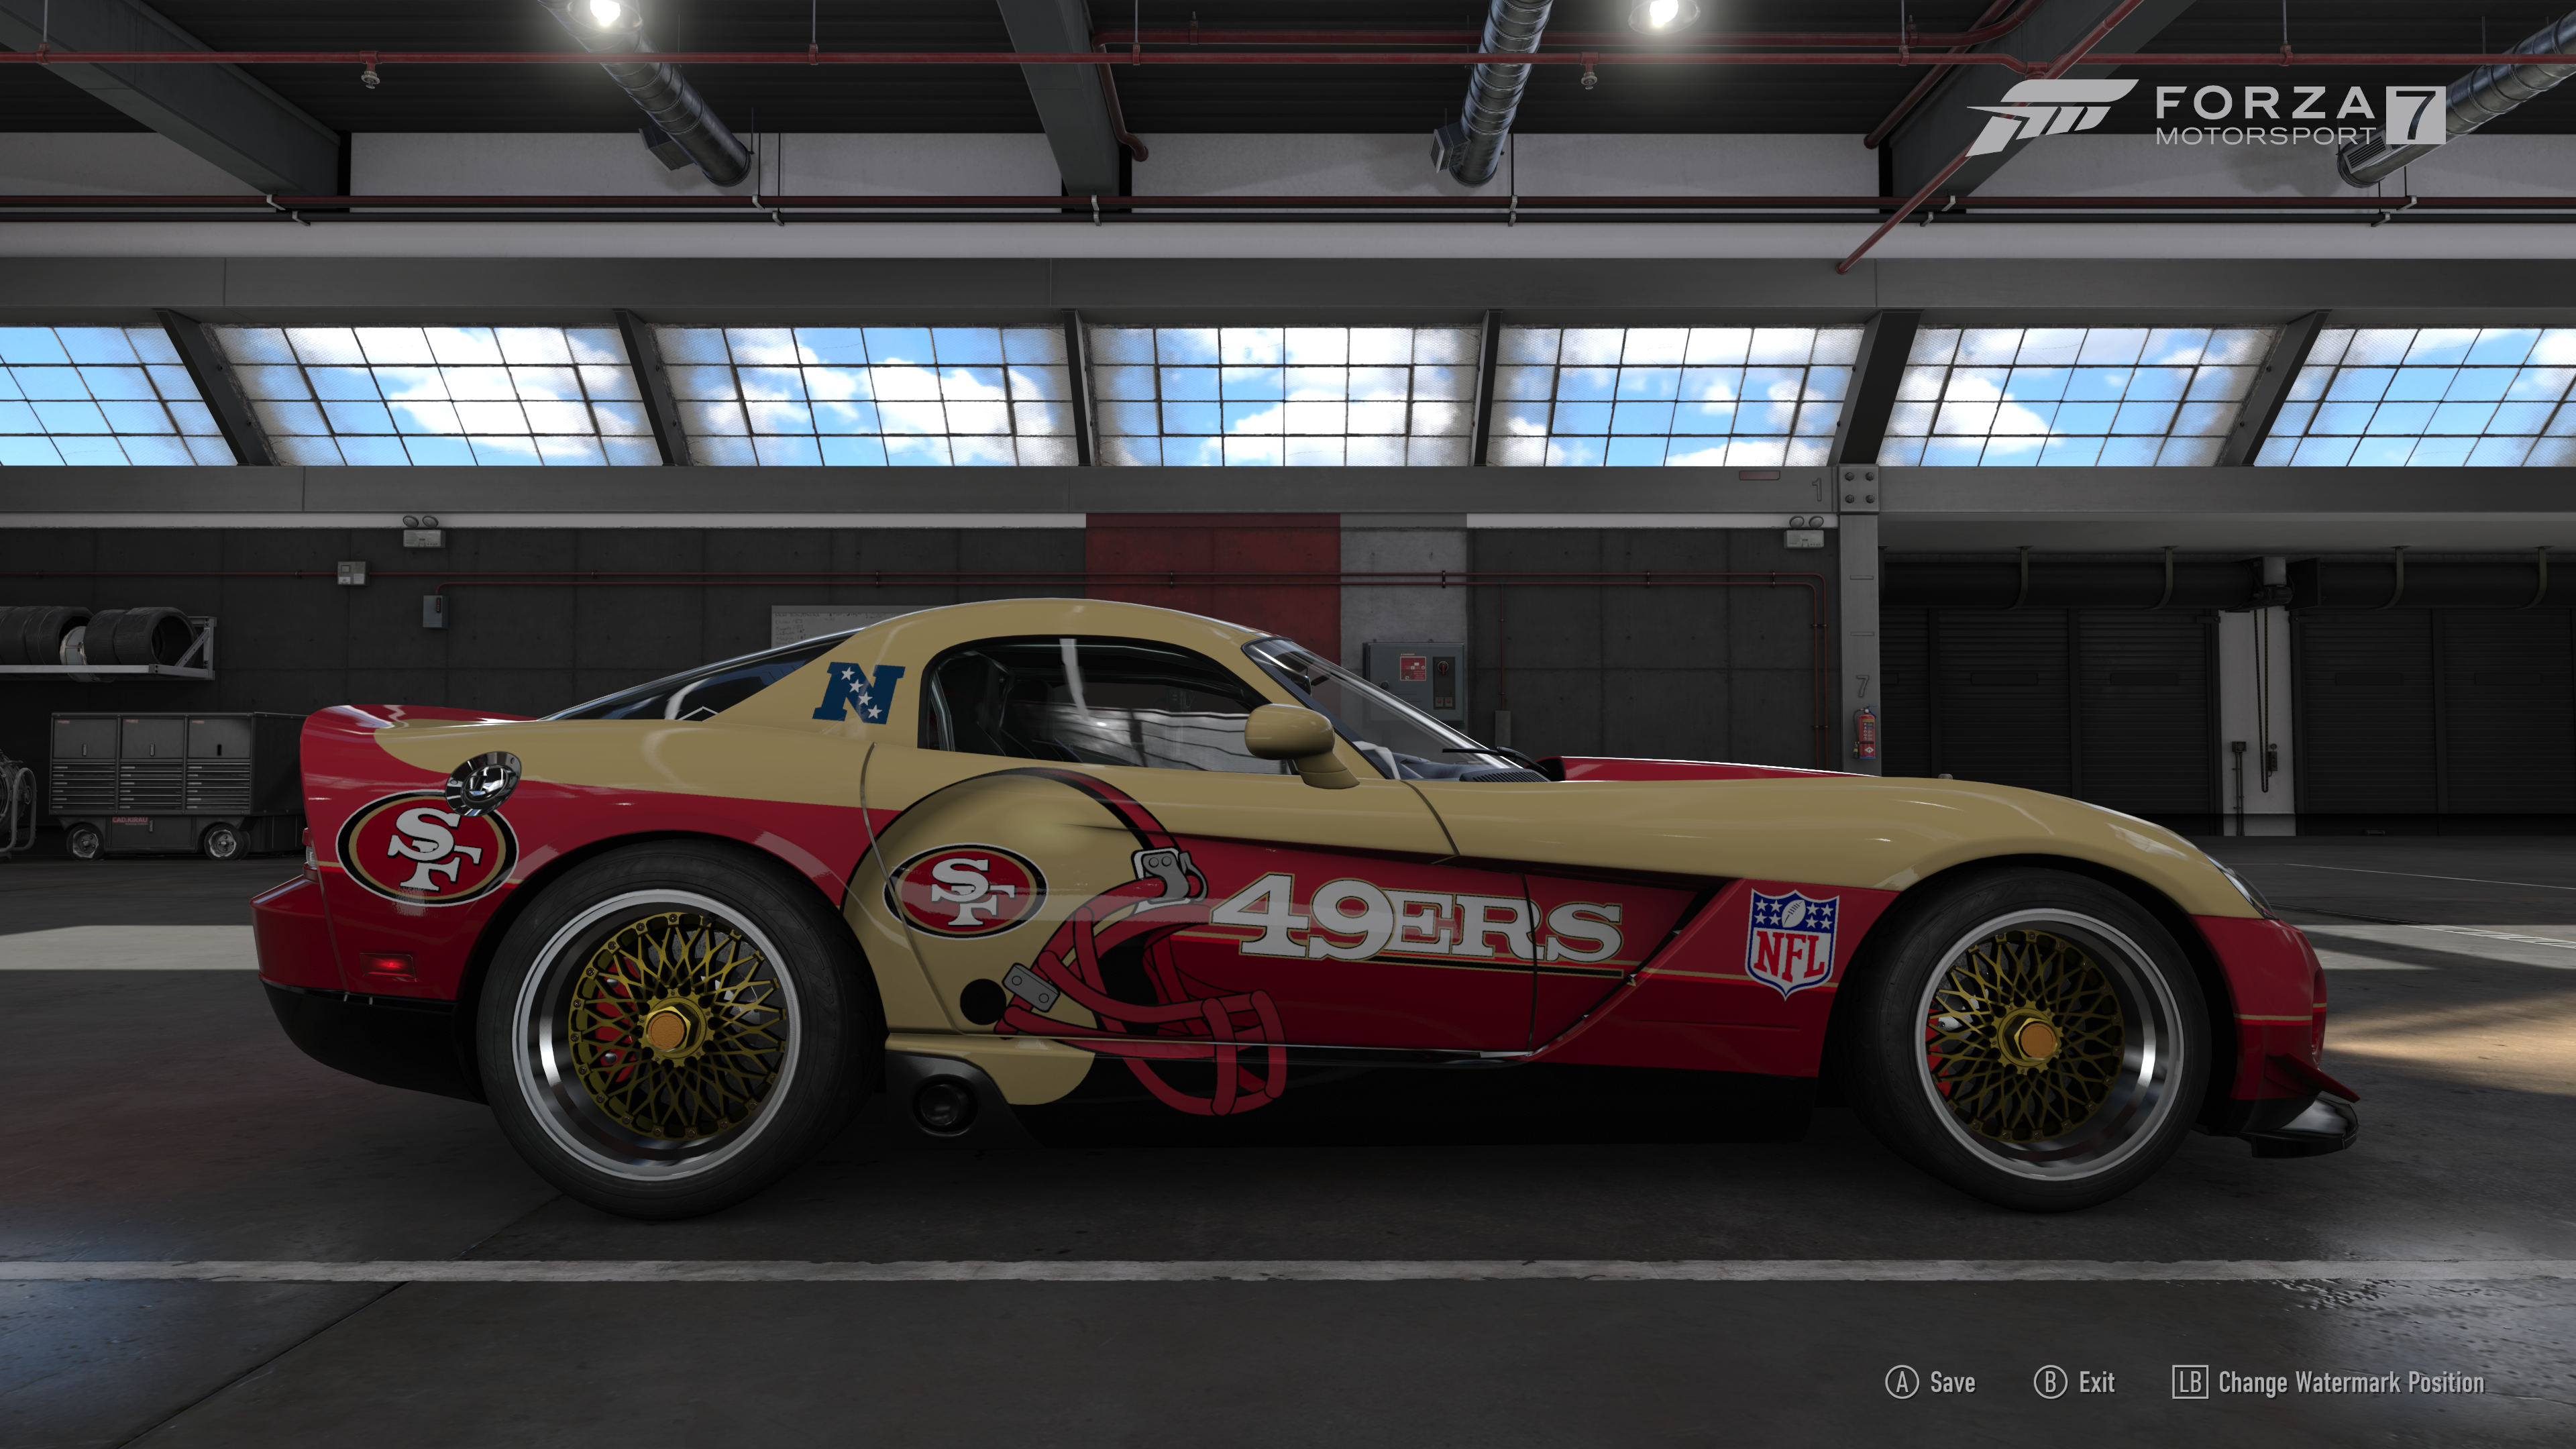 Forza Motorsport 7 Livery Contest 30 Please Note New Rules And Prizes Community Events Forza Motorsport Forums